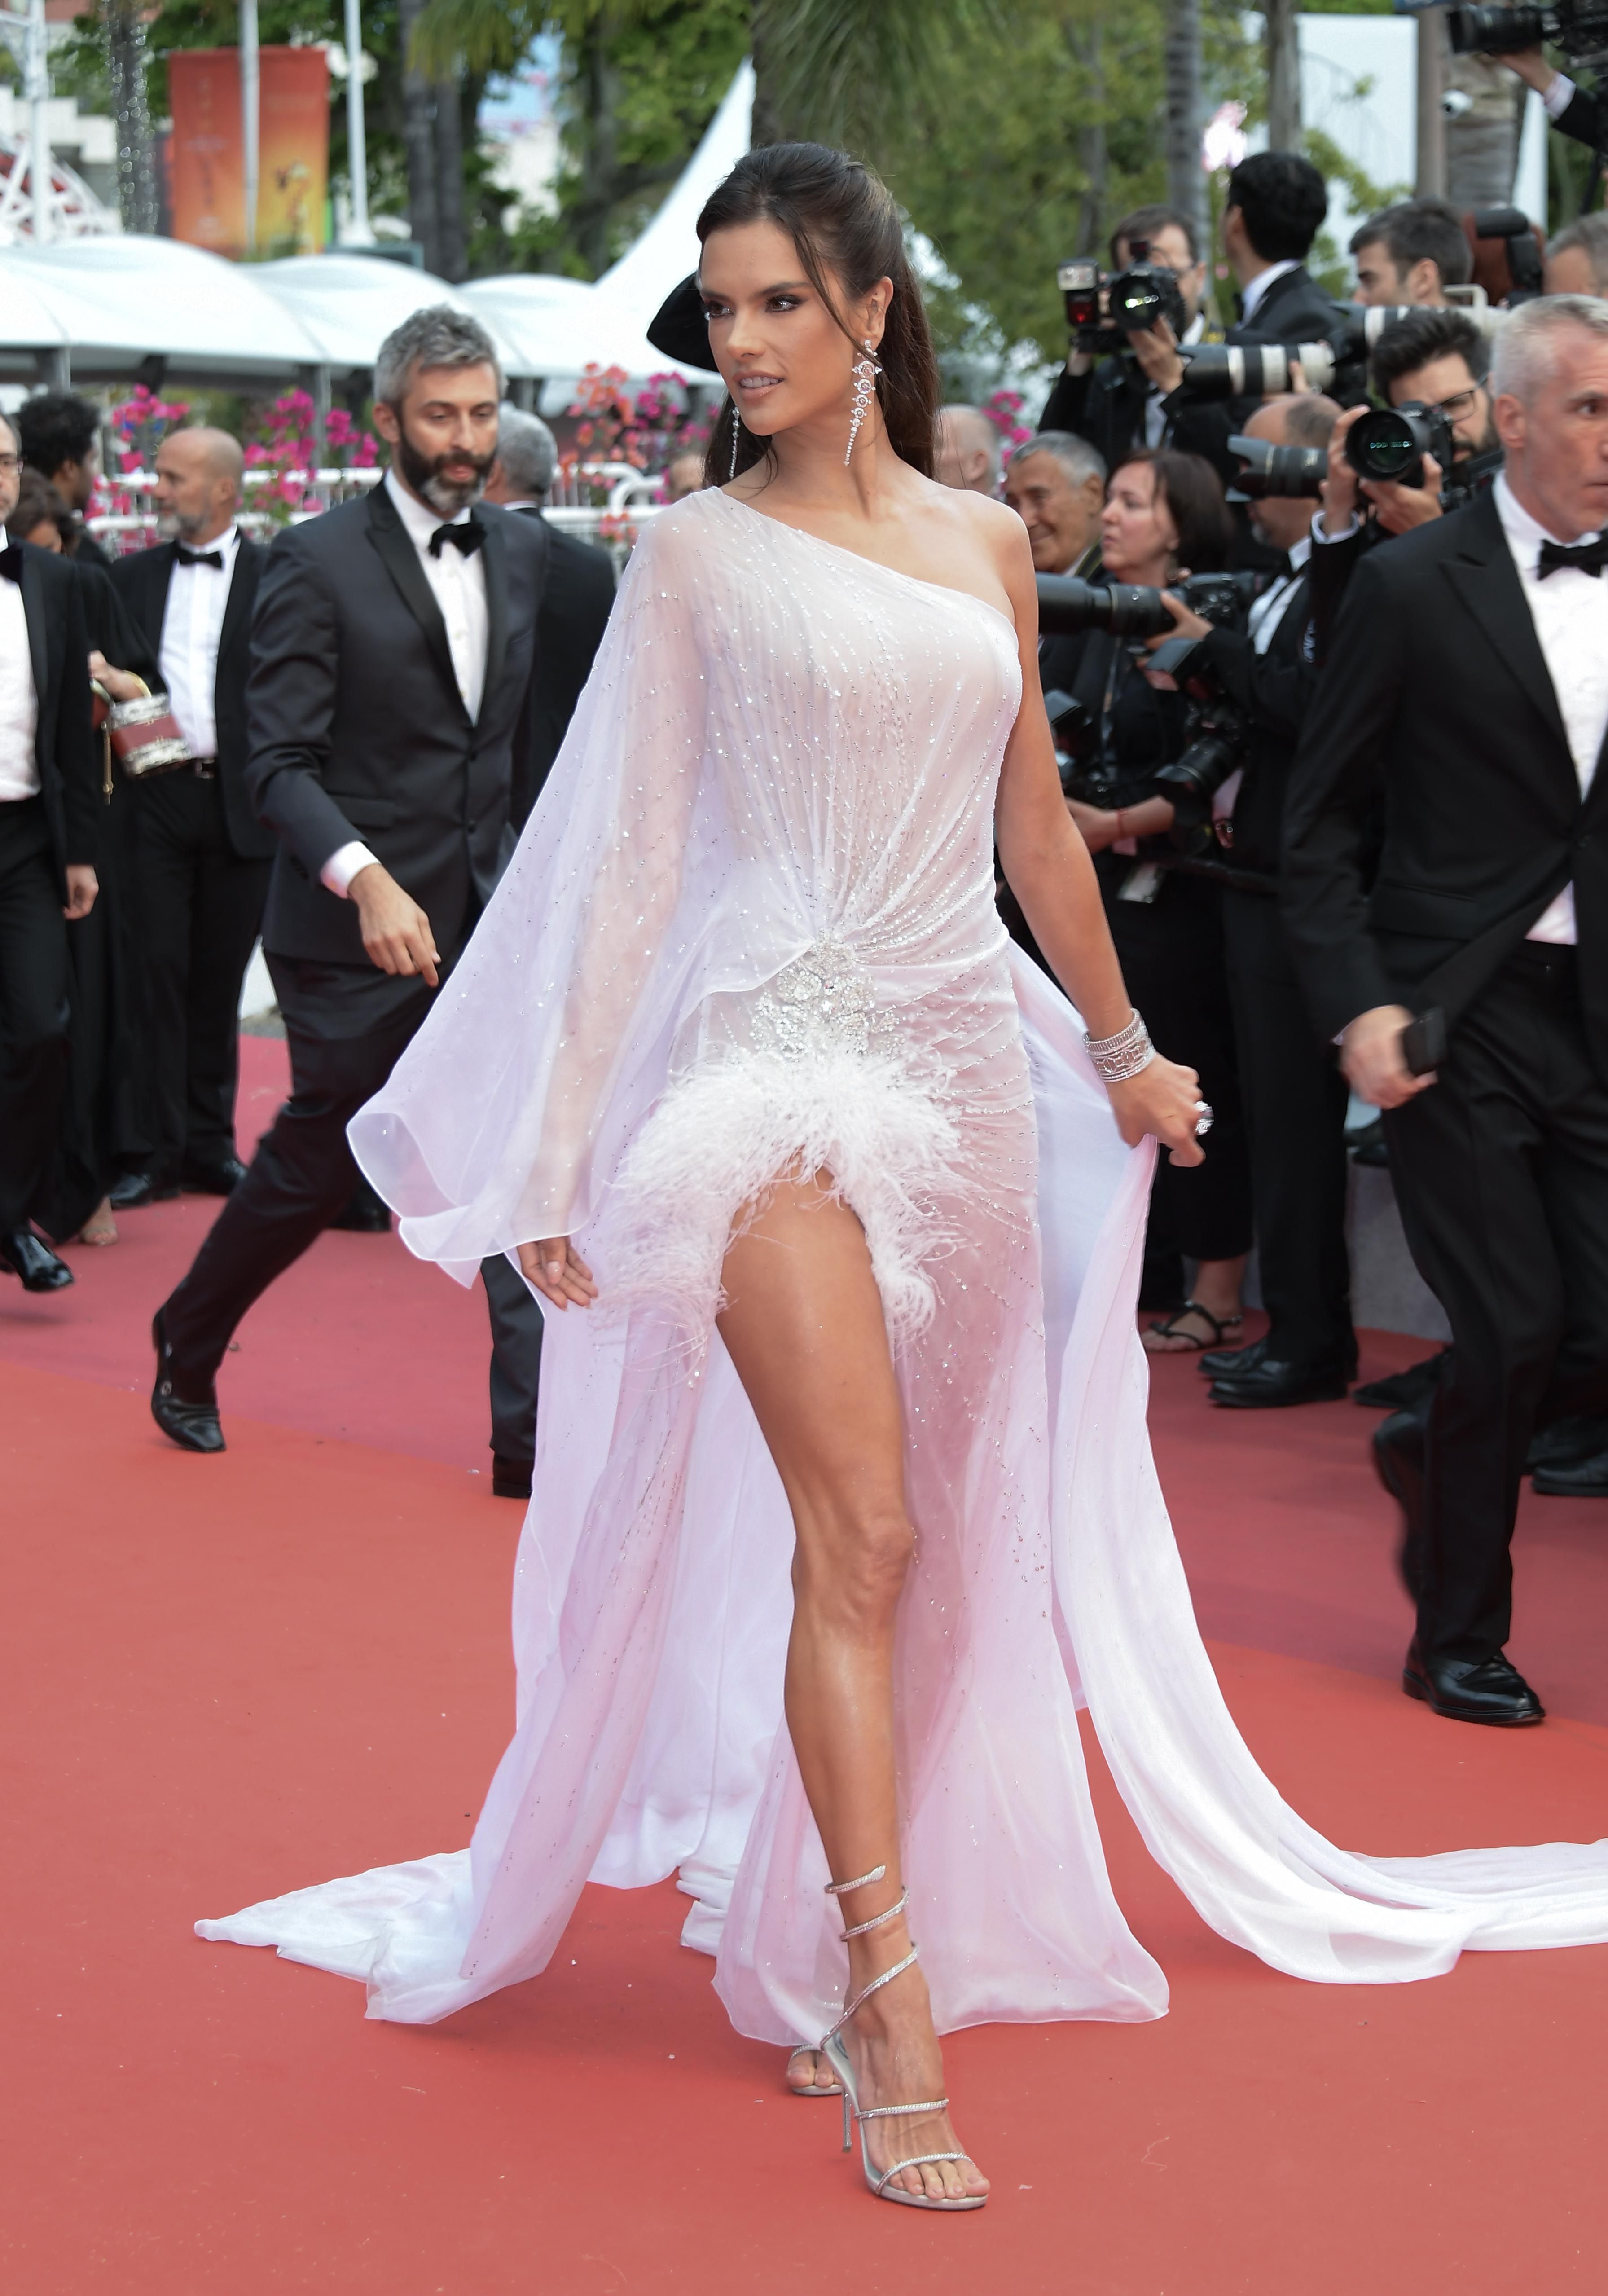 Alessandra Ambrosio At the opening ceremony of the Cannes Film Festival and premiere of The Dead Don't Die .